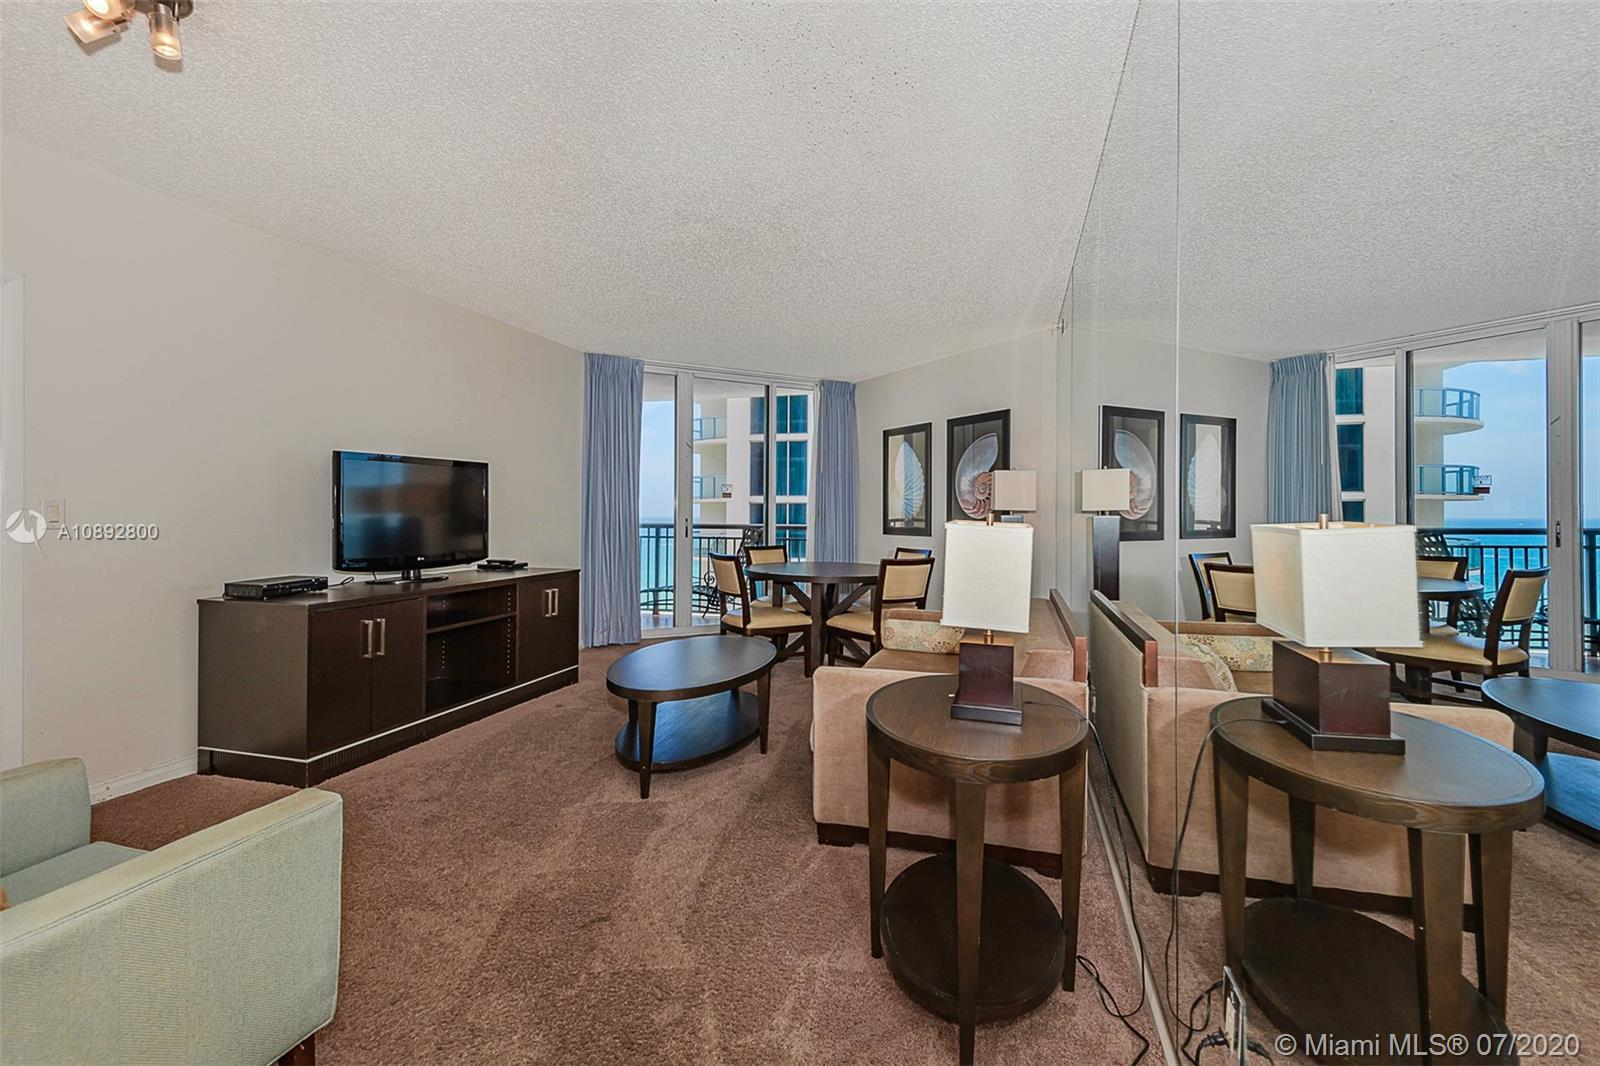 Great opportunity to buy an Oceanfront Property in Sunny Isles. Property offers resort-style ameniti